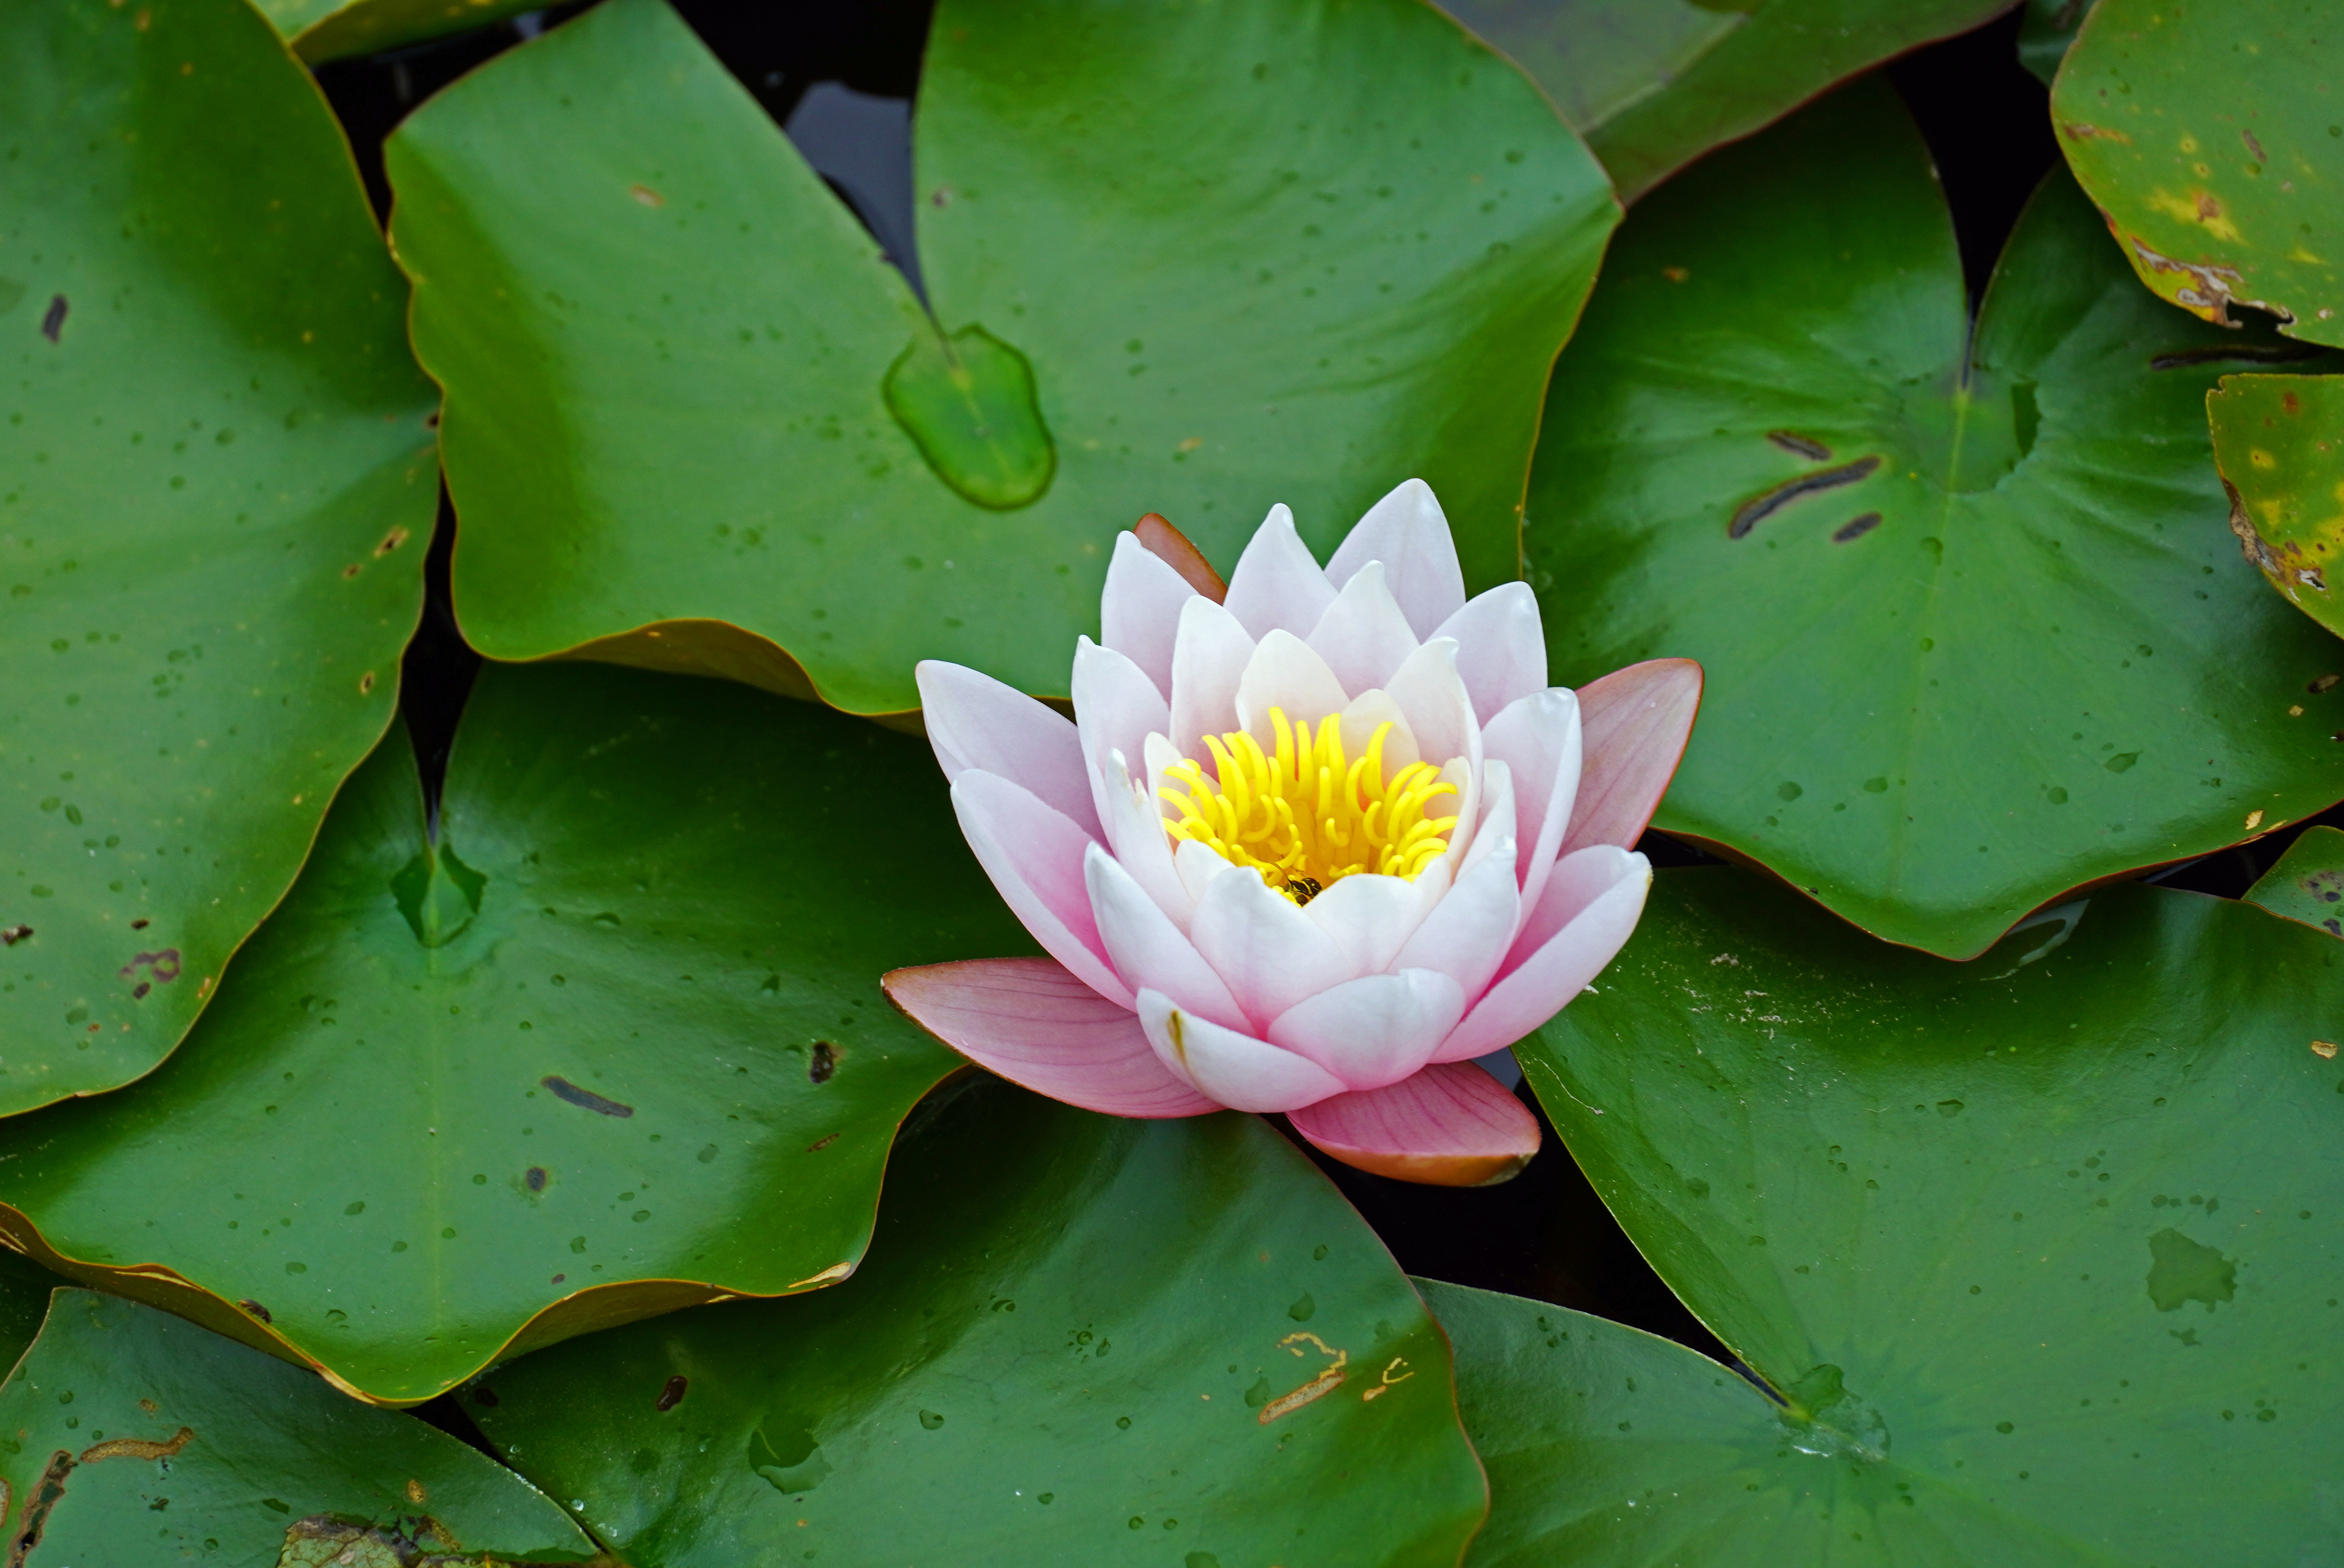 88662 download wallpaper Flowers, Leaves, Flower, Petals, Bloom, Flowering, Water Lily screensavers and pictures for free